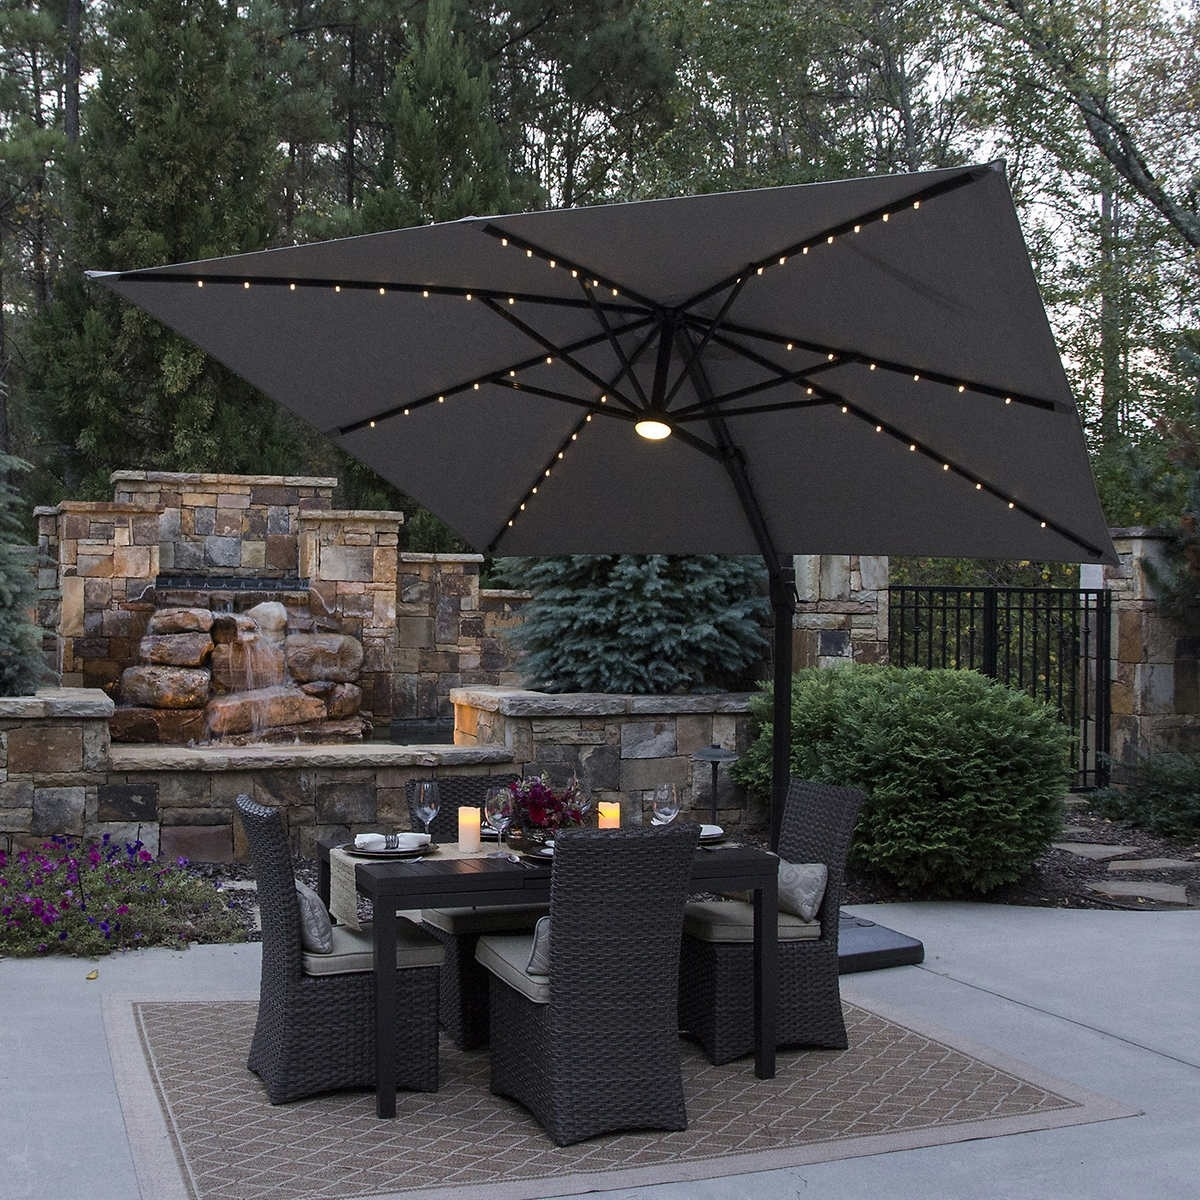 Dark Costco Patio Umbrella : Acvap Homes – Cleaning Costco Patio Regarding Current Costco Cantilever Patio Umbrellas (Gallery 6 of 20)